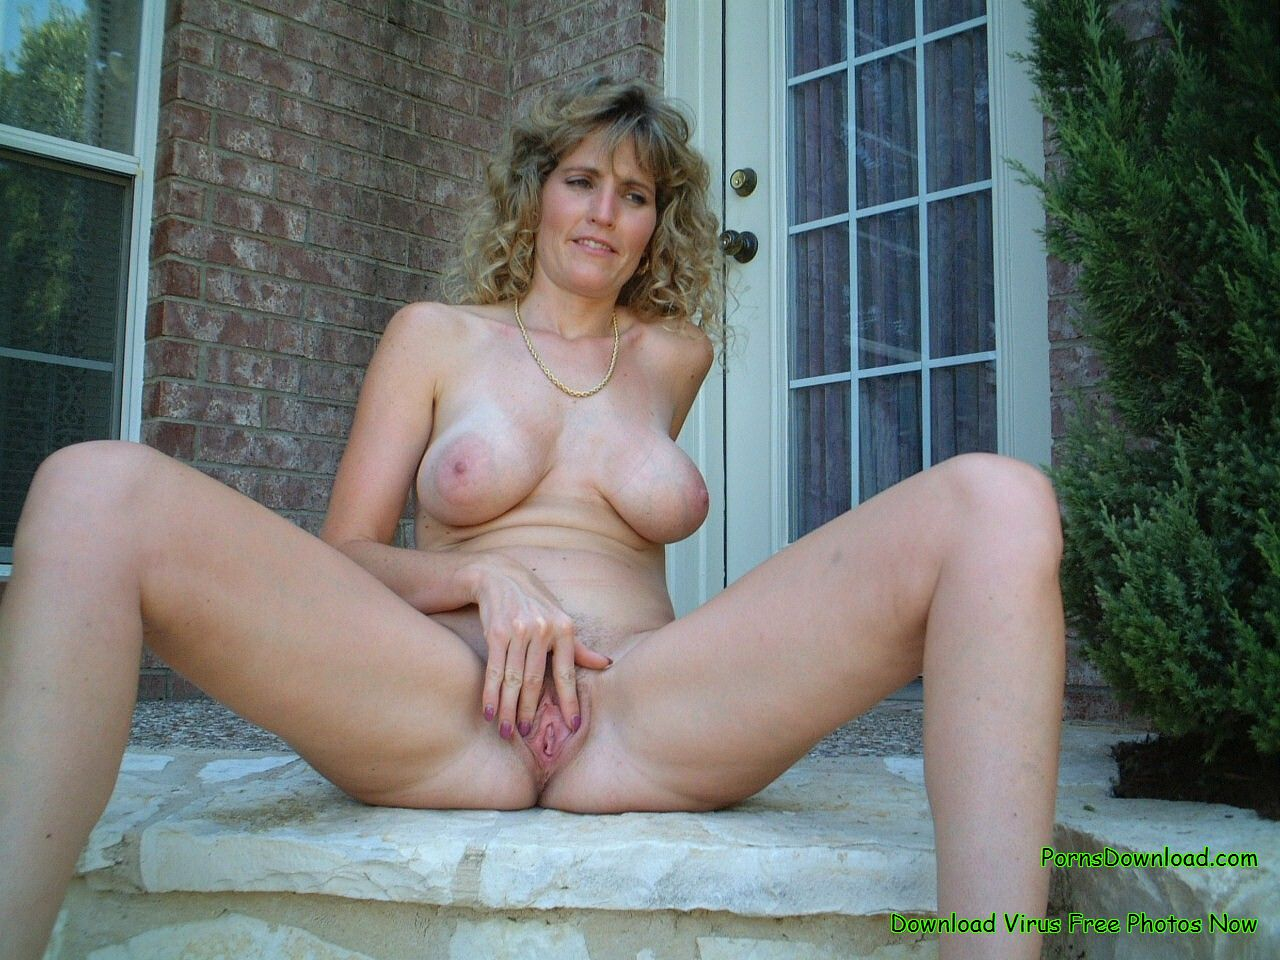 amatuer mature women porn naked pictures - adidasspringblade2